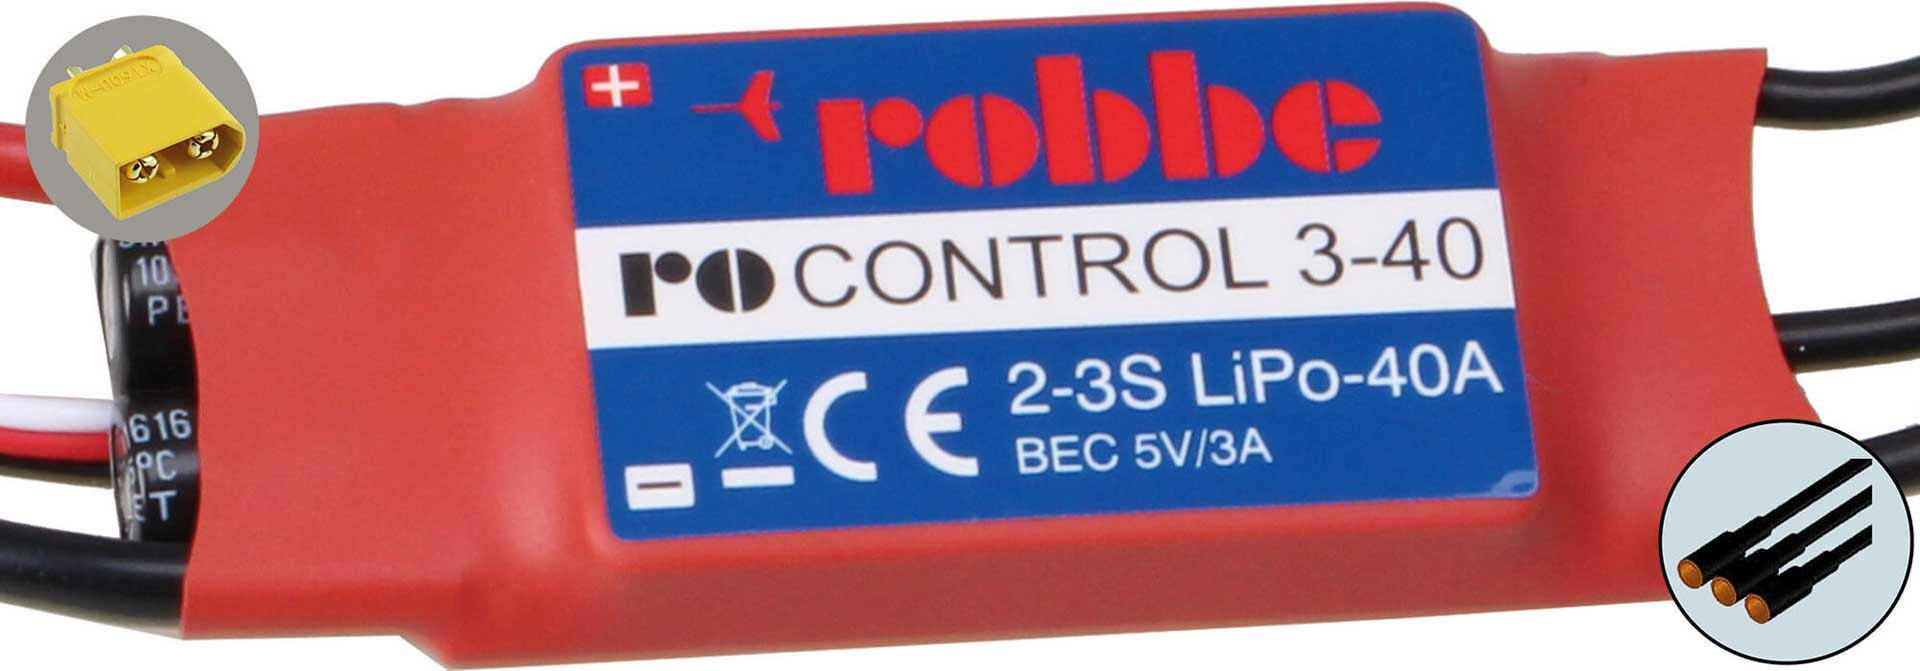 ROBBE RO-CONTROL 3-40 3-4S -40(55)A BRUSHLESS CONTROLLER 5V/3A BEC